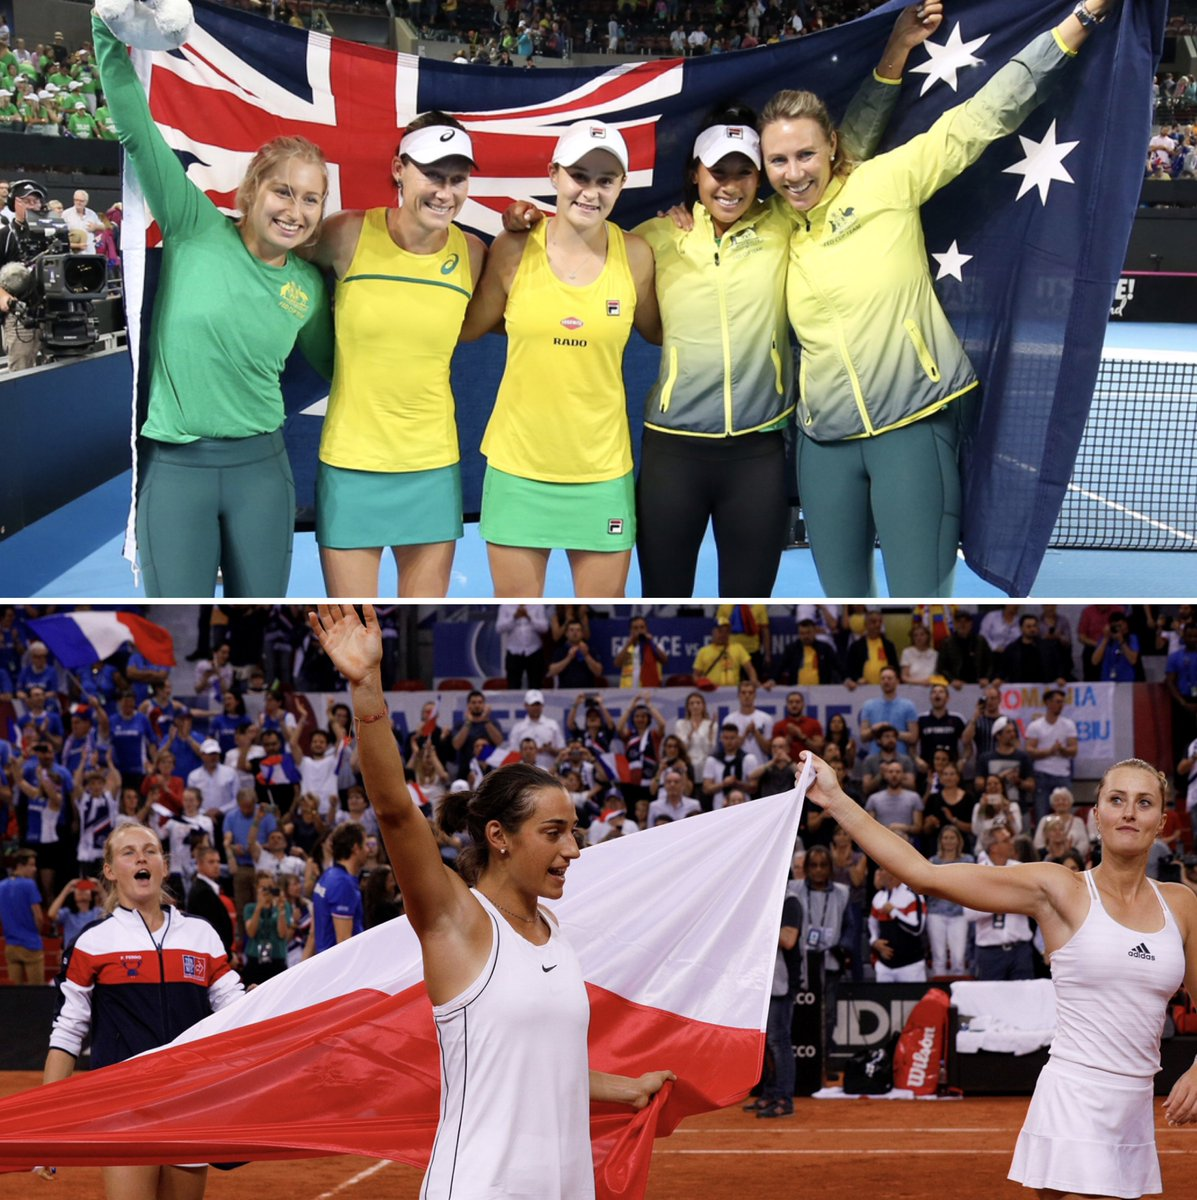 November will be epic 🇦🇺 🇫🇷 Bring on the 2019 @FedCup final between Australia and France: bit.ly/2IIQRd4.